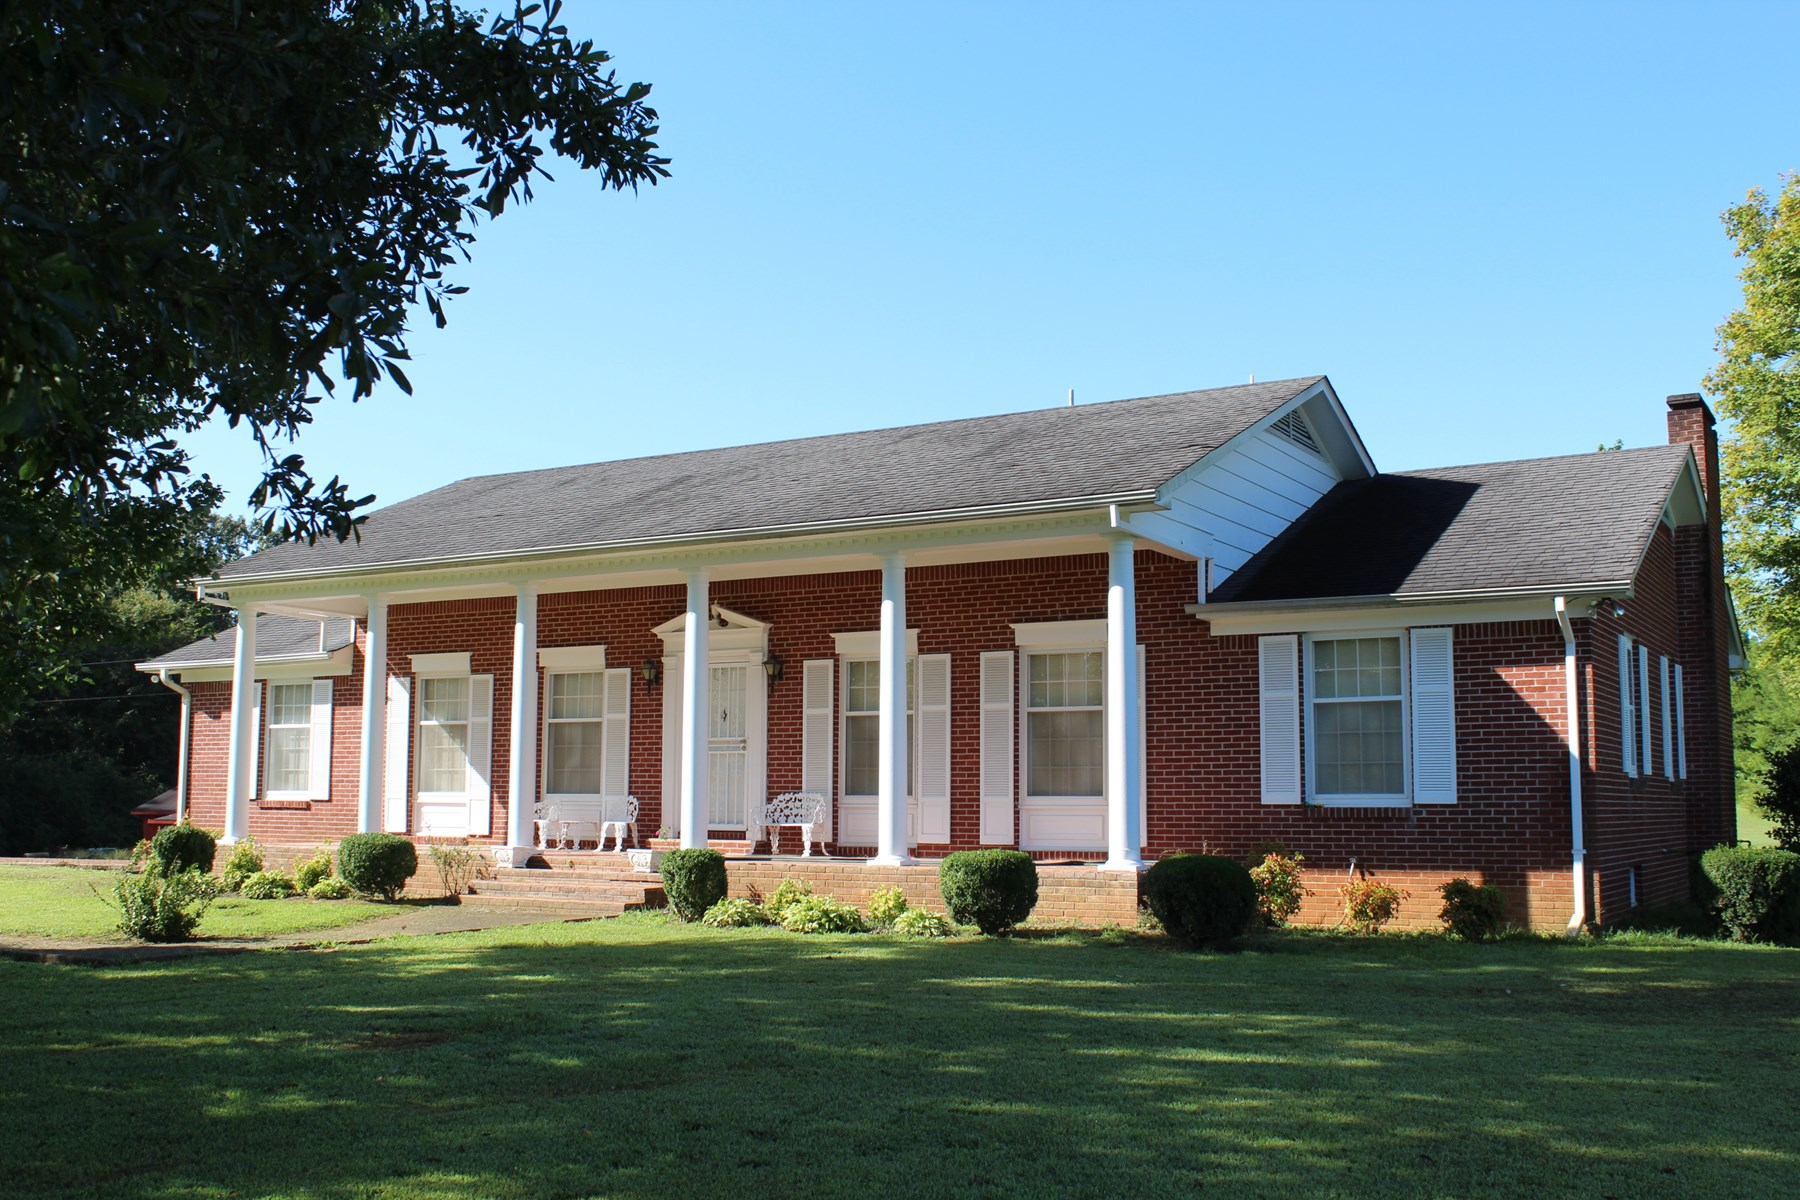 TN COUNTRY HOME W/ BASEMENT, SHOP, OUTBUILDING AND ACREAGE